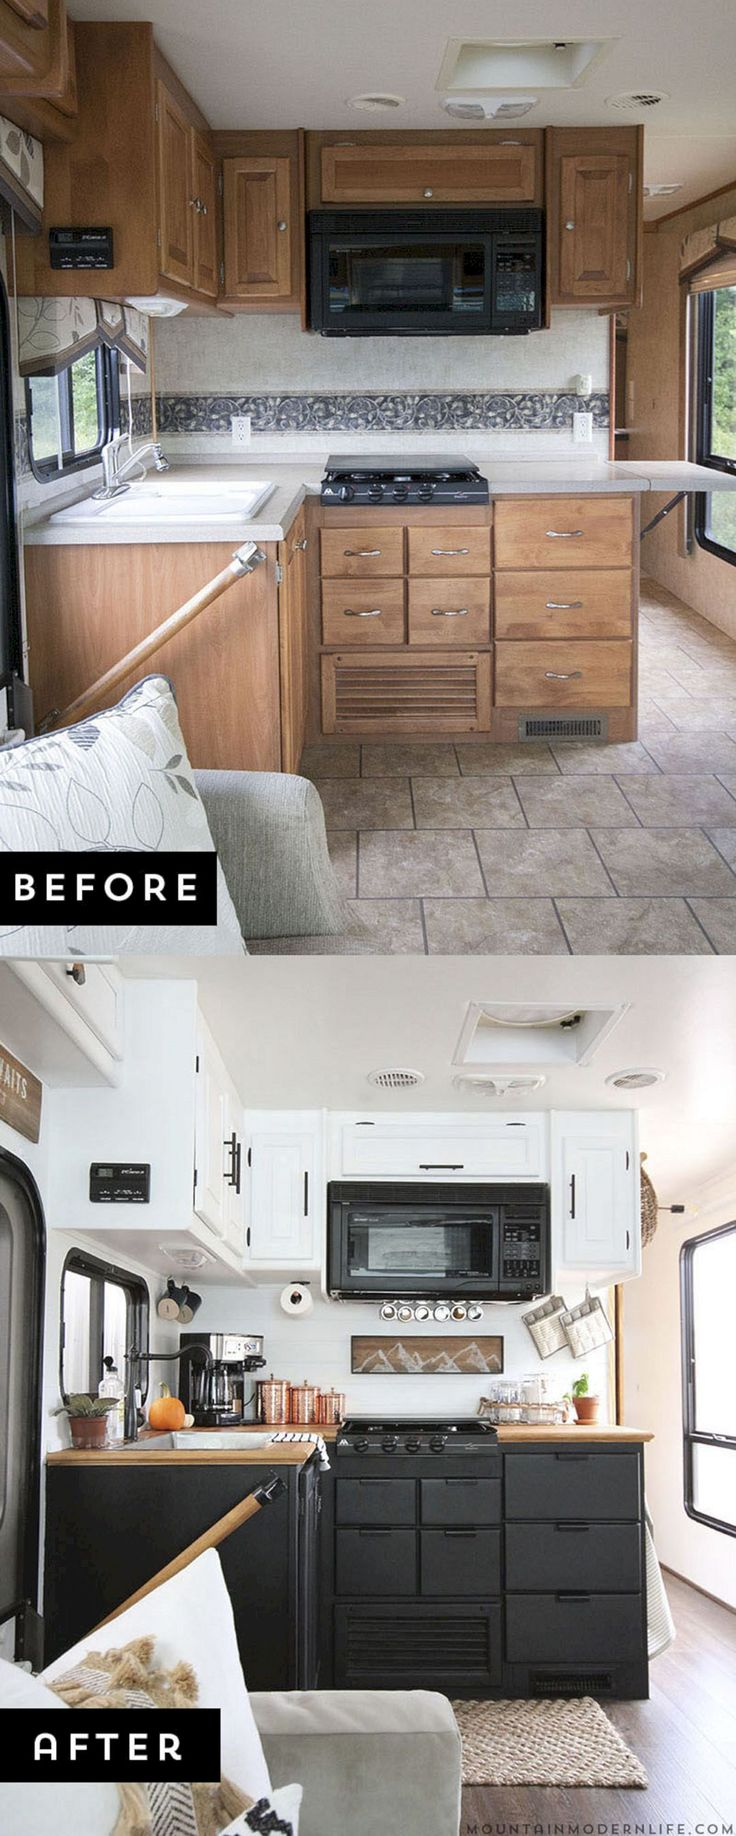 The 25 best rv pictures ideas on pinterest bus house bus camper and buses